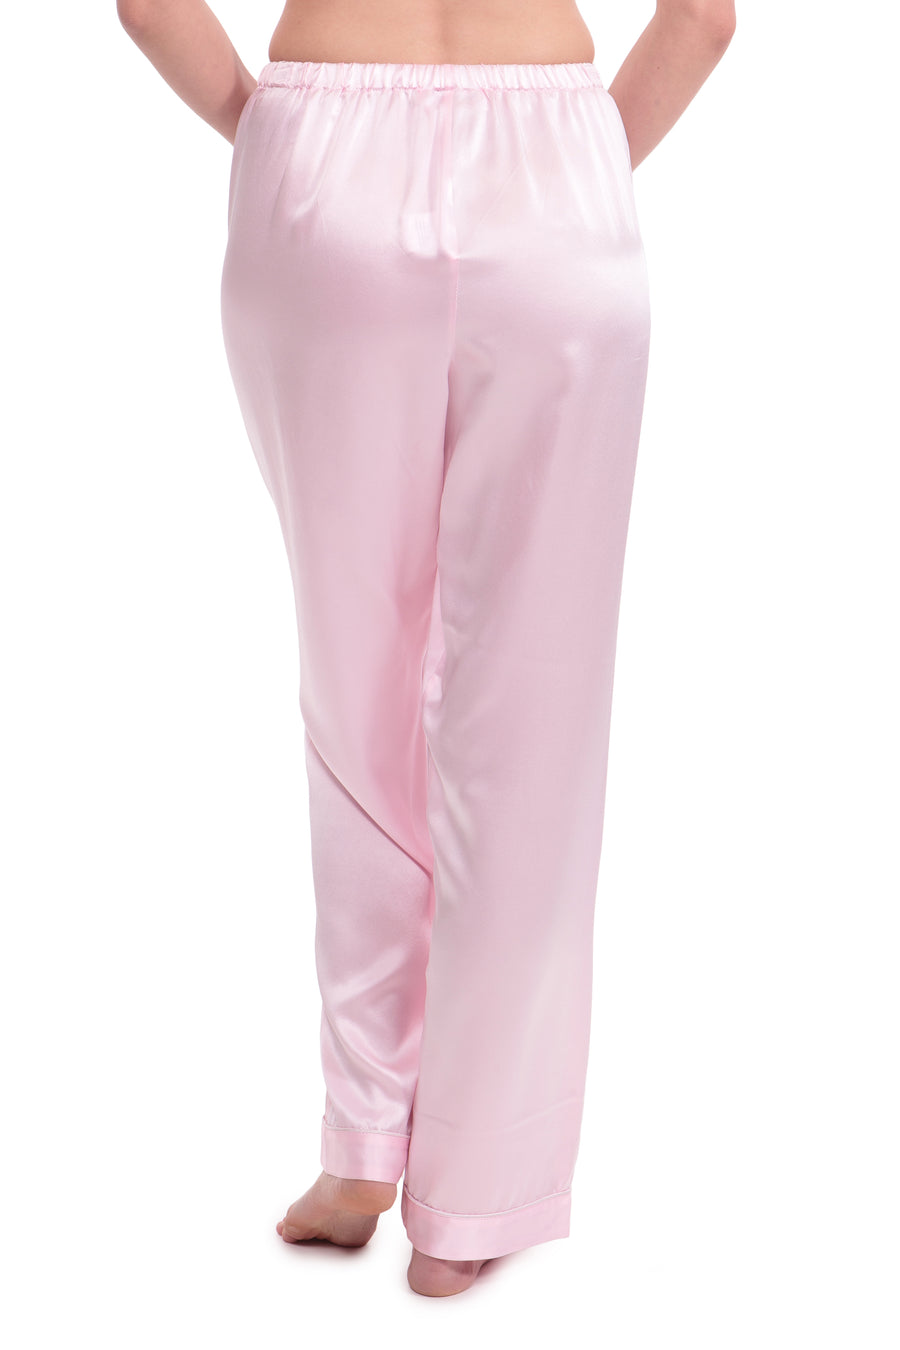 Morning Moon - Women's Silk PJ Pants - TexereSilk